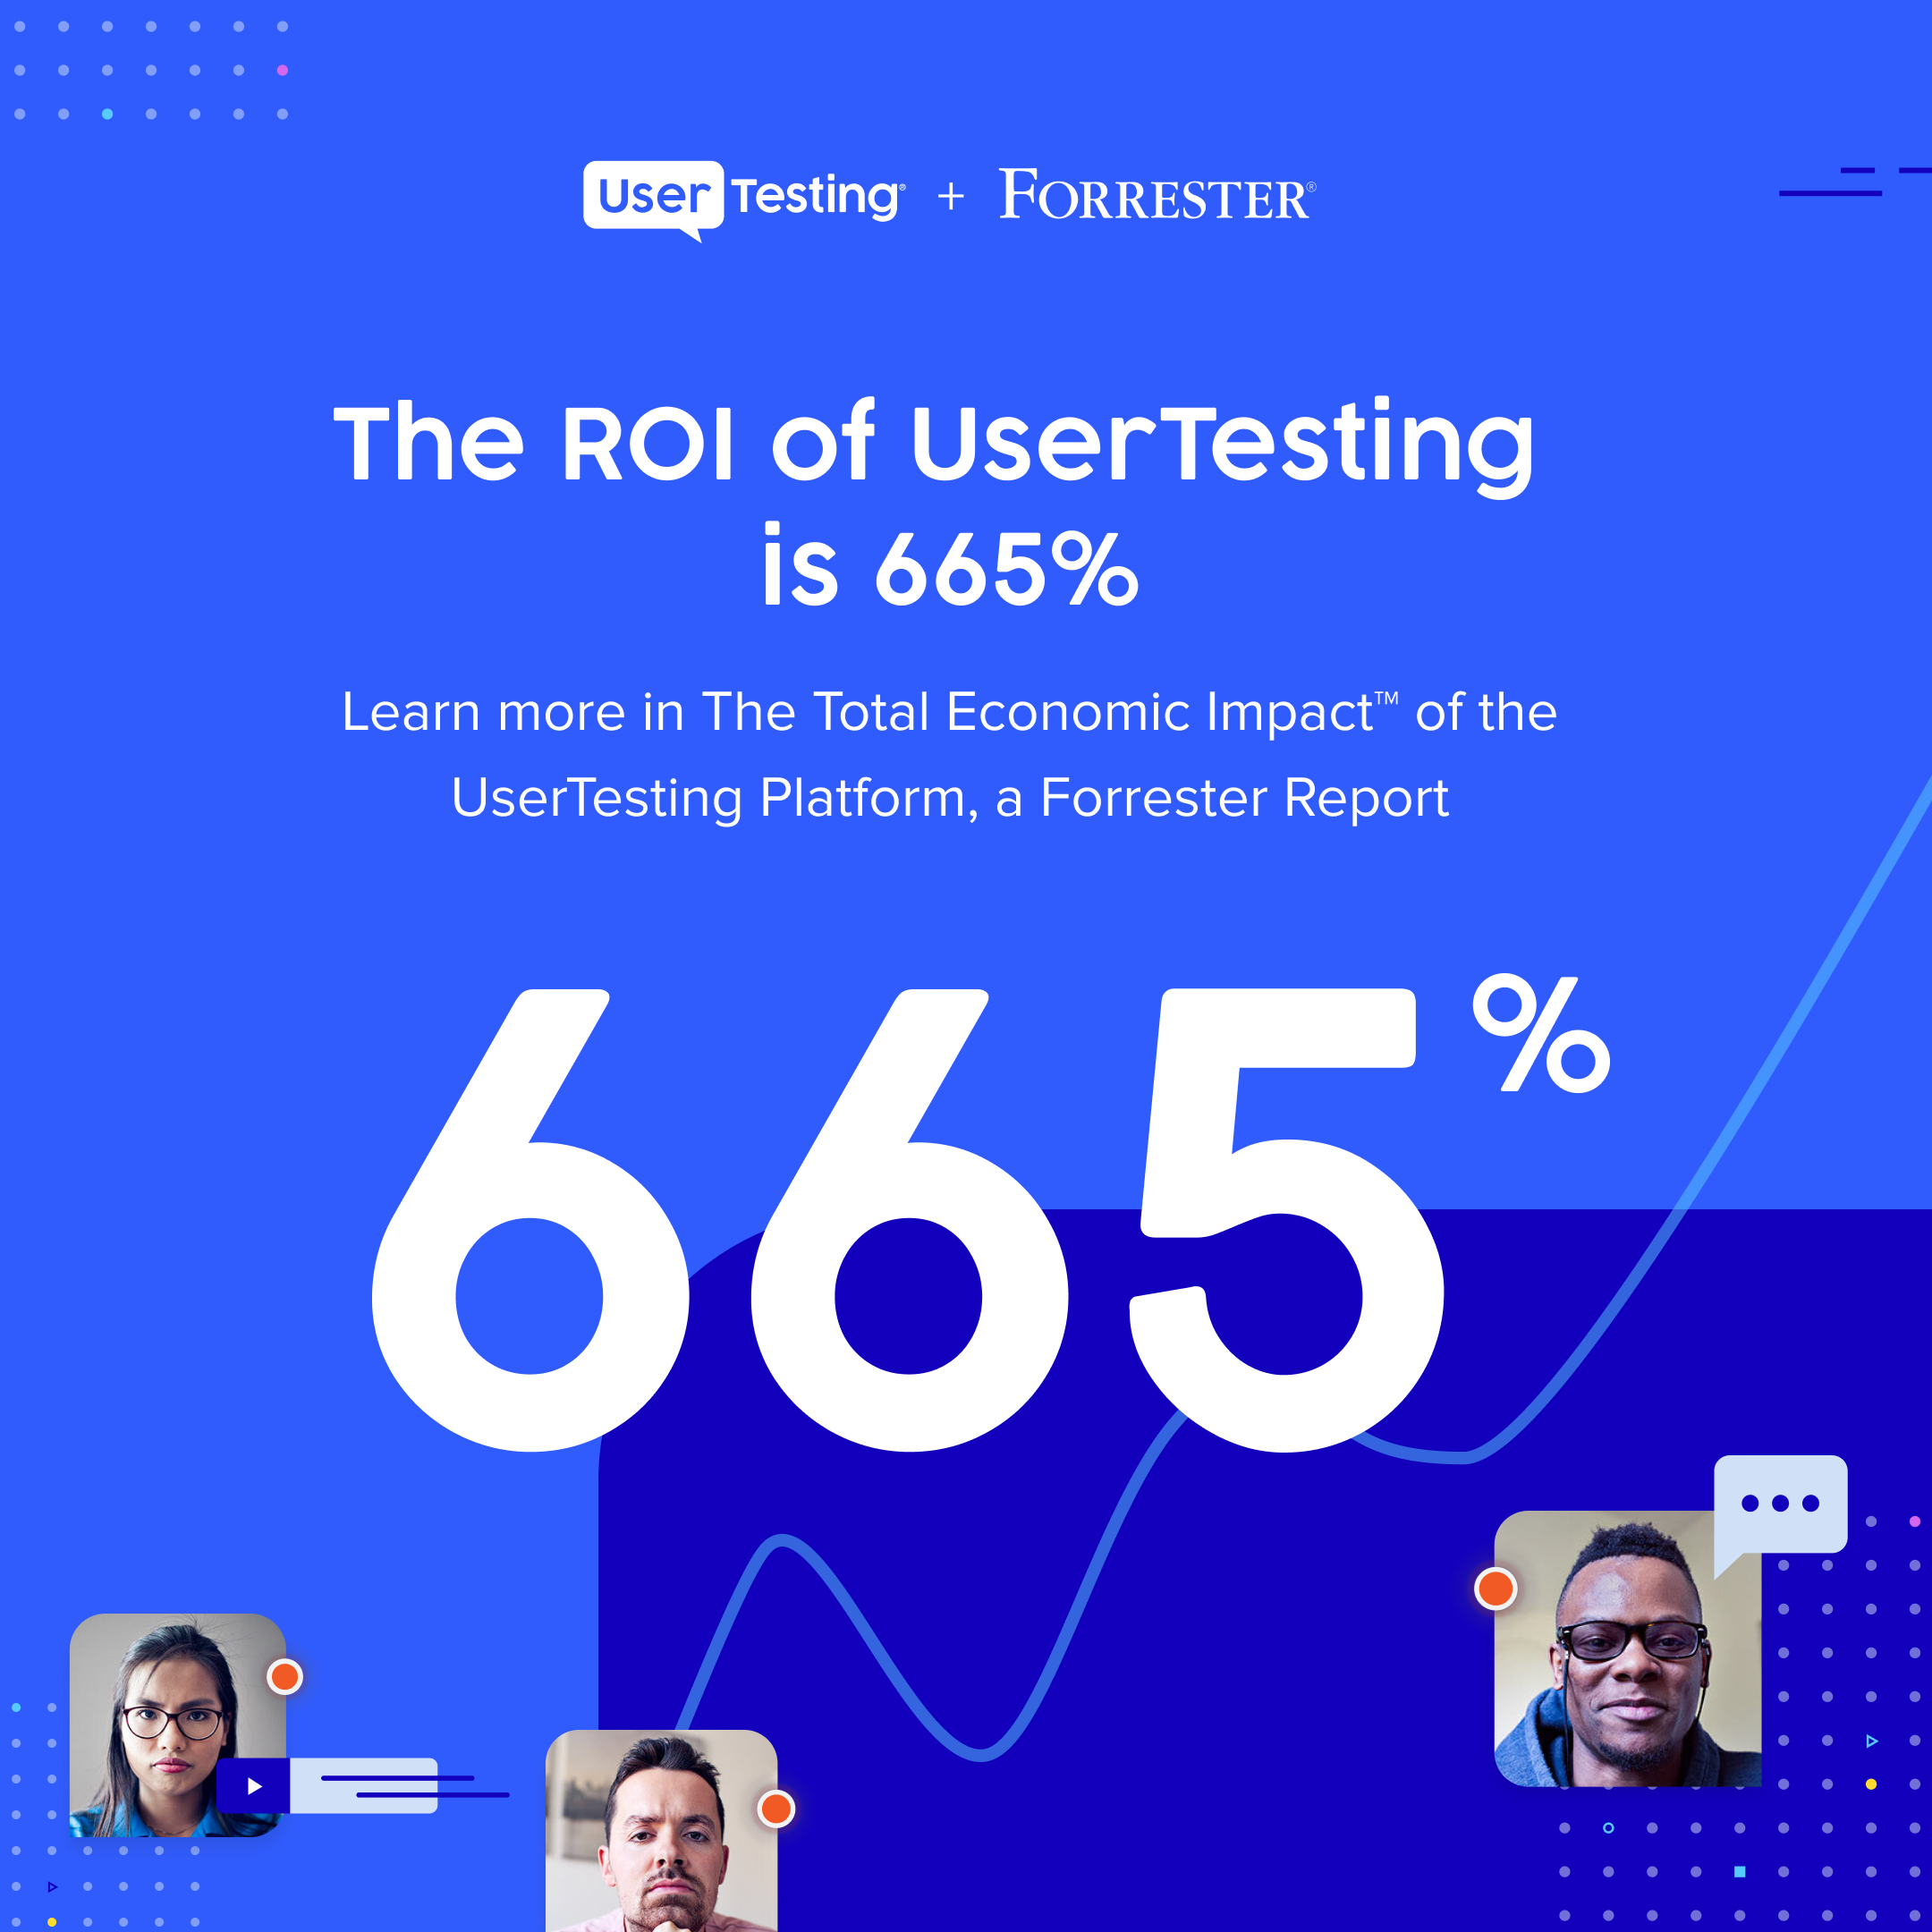 The ROI of UserTesting